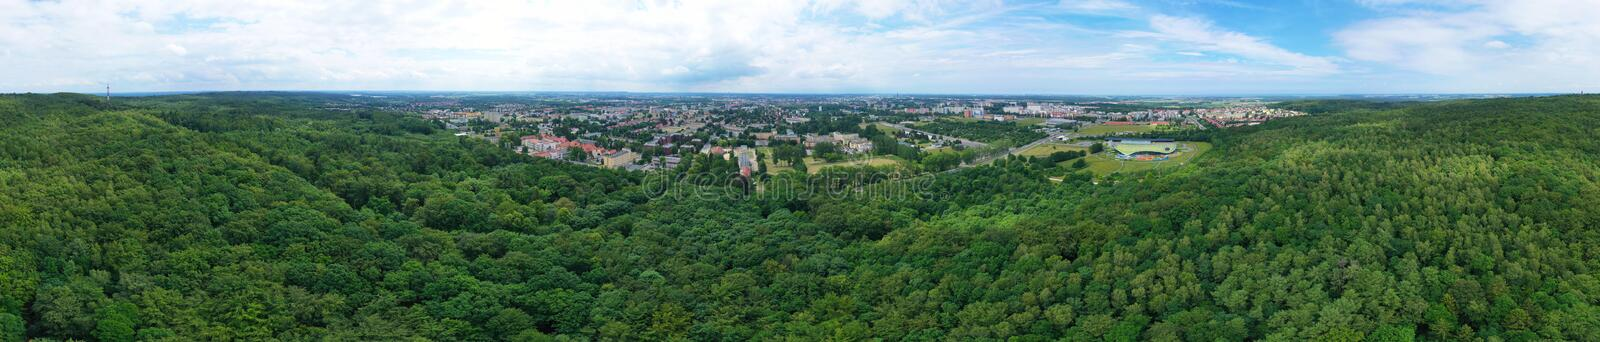 Aerial drone wide panoramic view on green lungs forest surrounding european city during summer, aquapark complex royalty free stock images